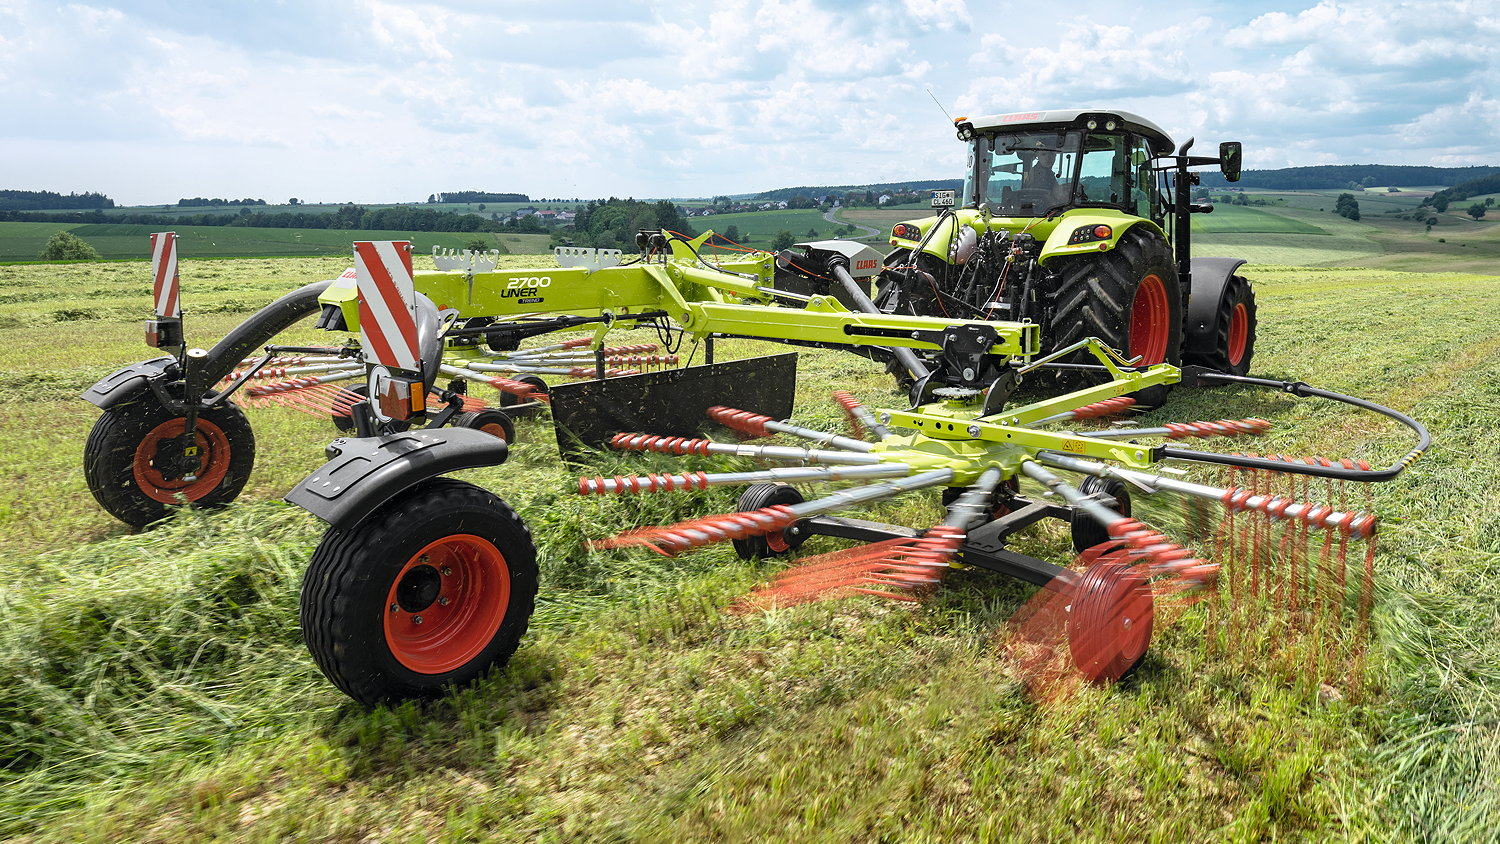 The Claas Liner 2700 Trend twin-rotor rake has been introduced for 2022